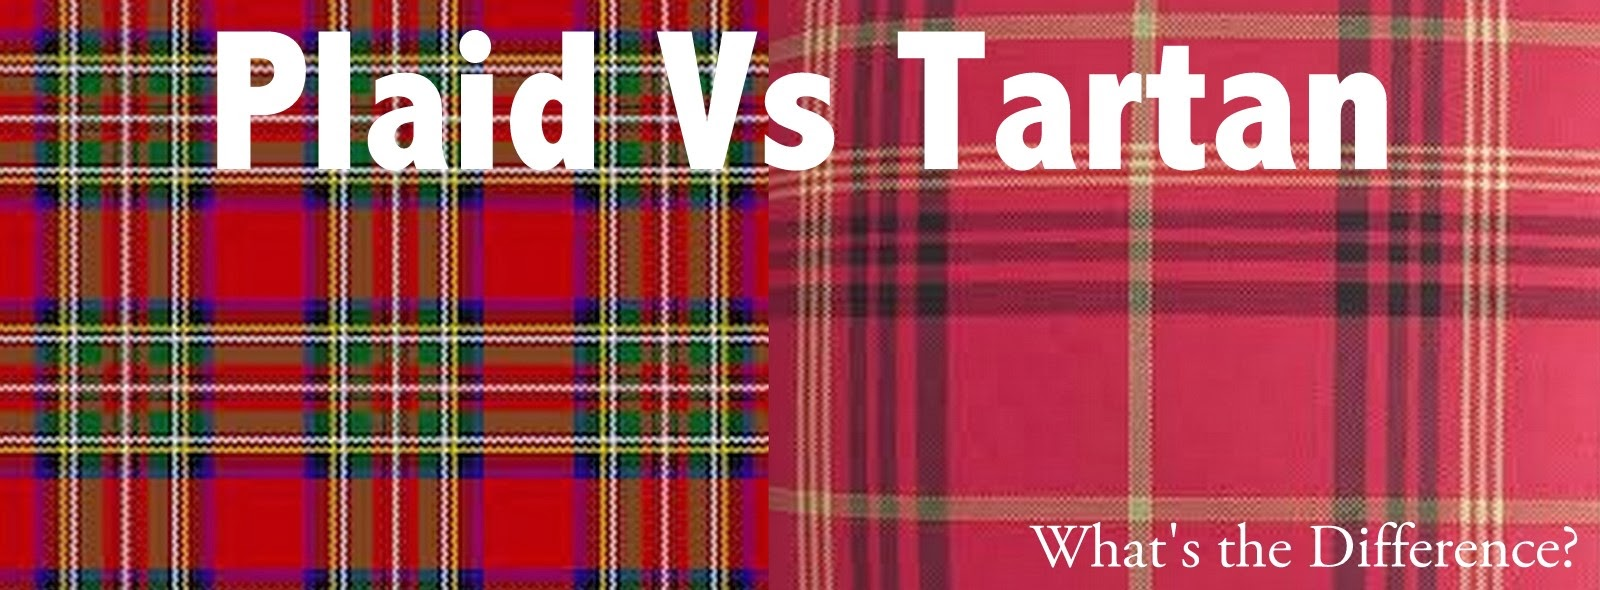 plaid vs tartan fashion